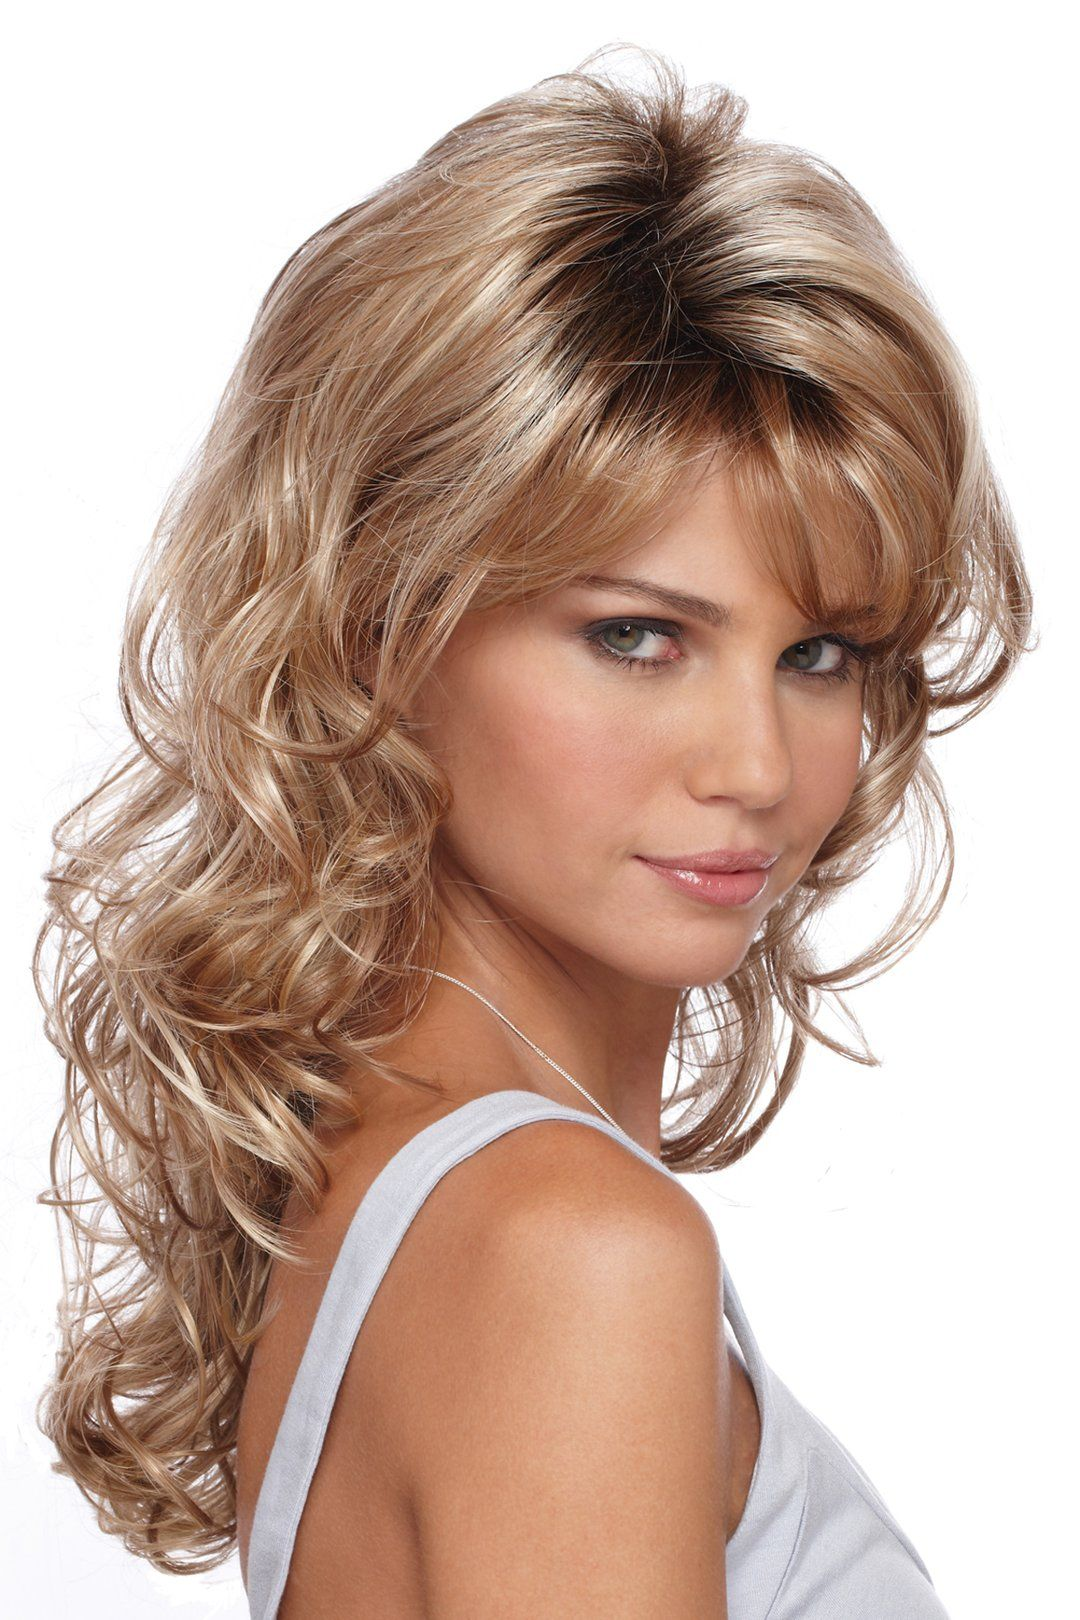 Estetica wigs becky in 2020 wig hairstyles curly hair